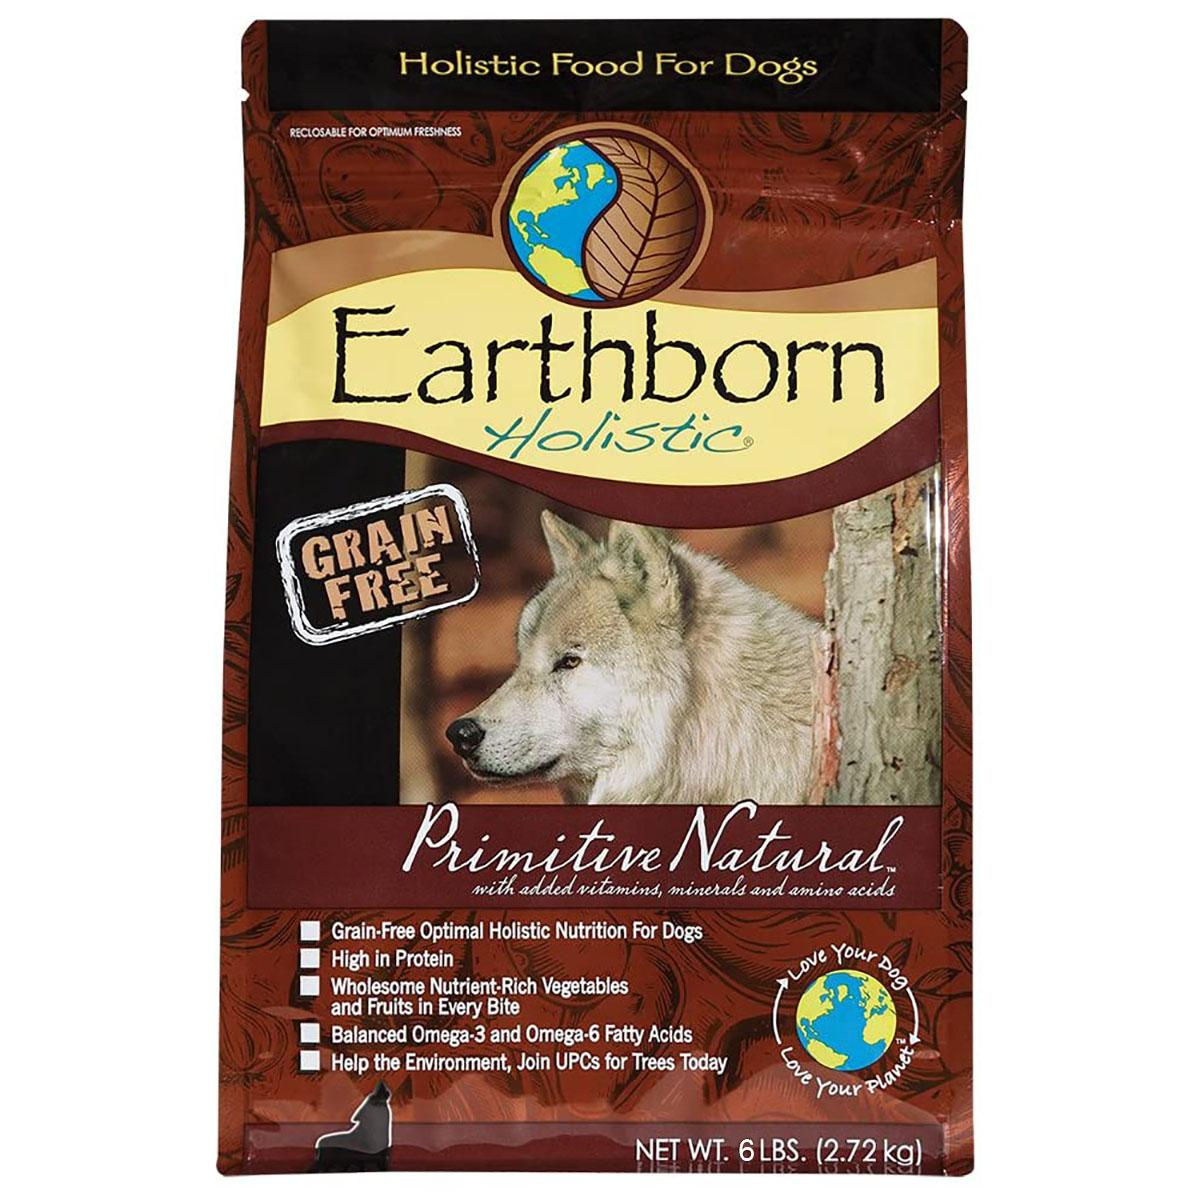 Earthborn Holistic Grain-Free Dry Dog Food - Primitive Natural